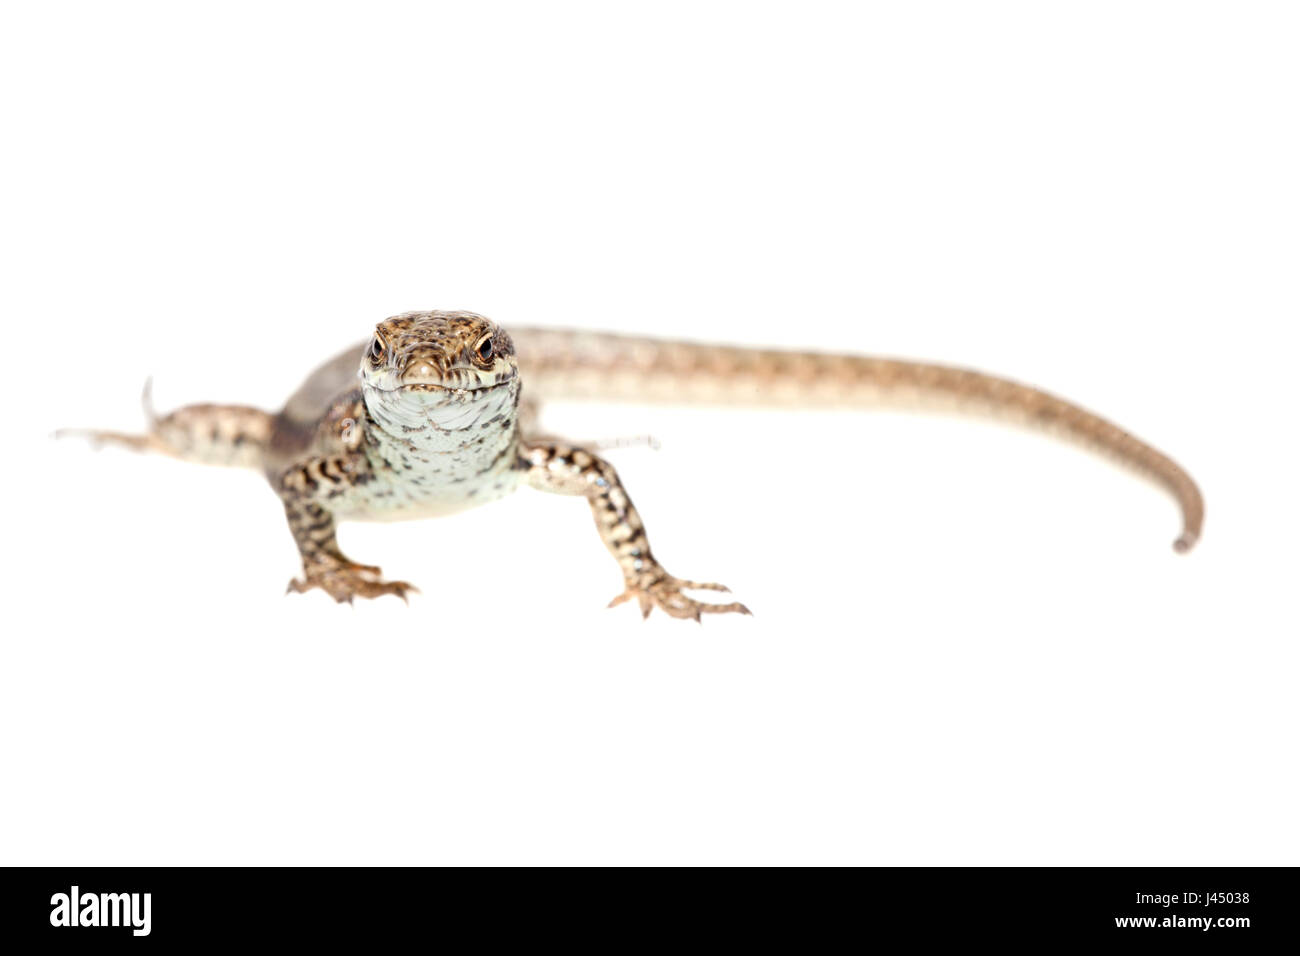 rendered photo of a common wall lizard (podarcis muralis) - Stock Image